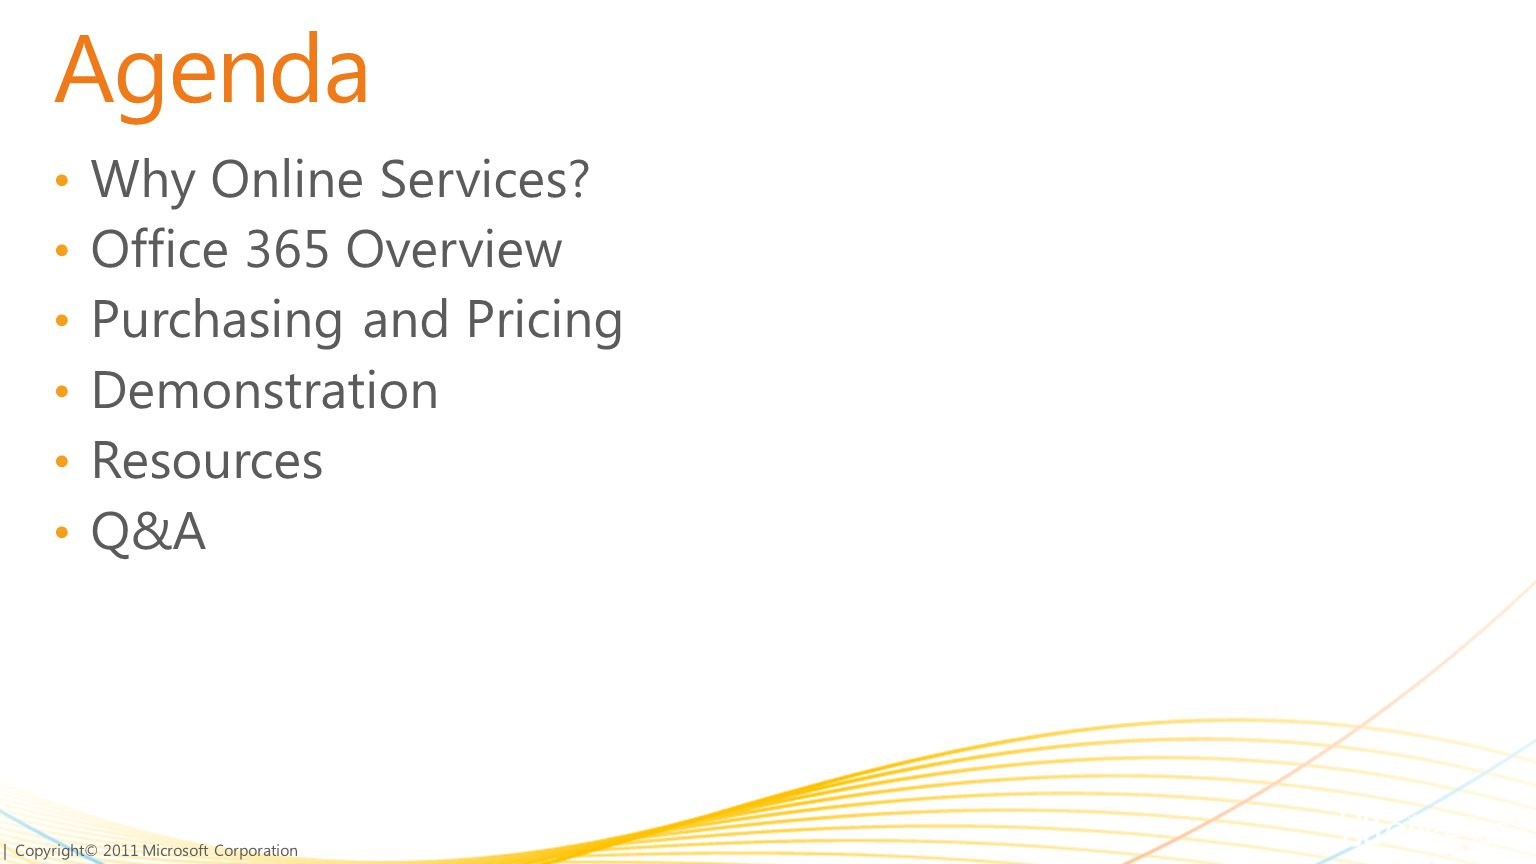 | Copyright© 2011 Microsoft Corporation Agenda Why Online Services? Office 365 Overview Purchasing and Pricing Demonstration Resources Q&A